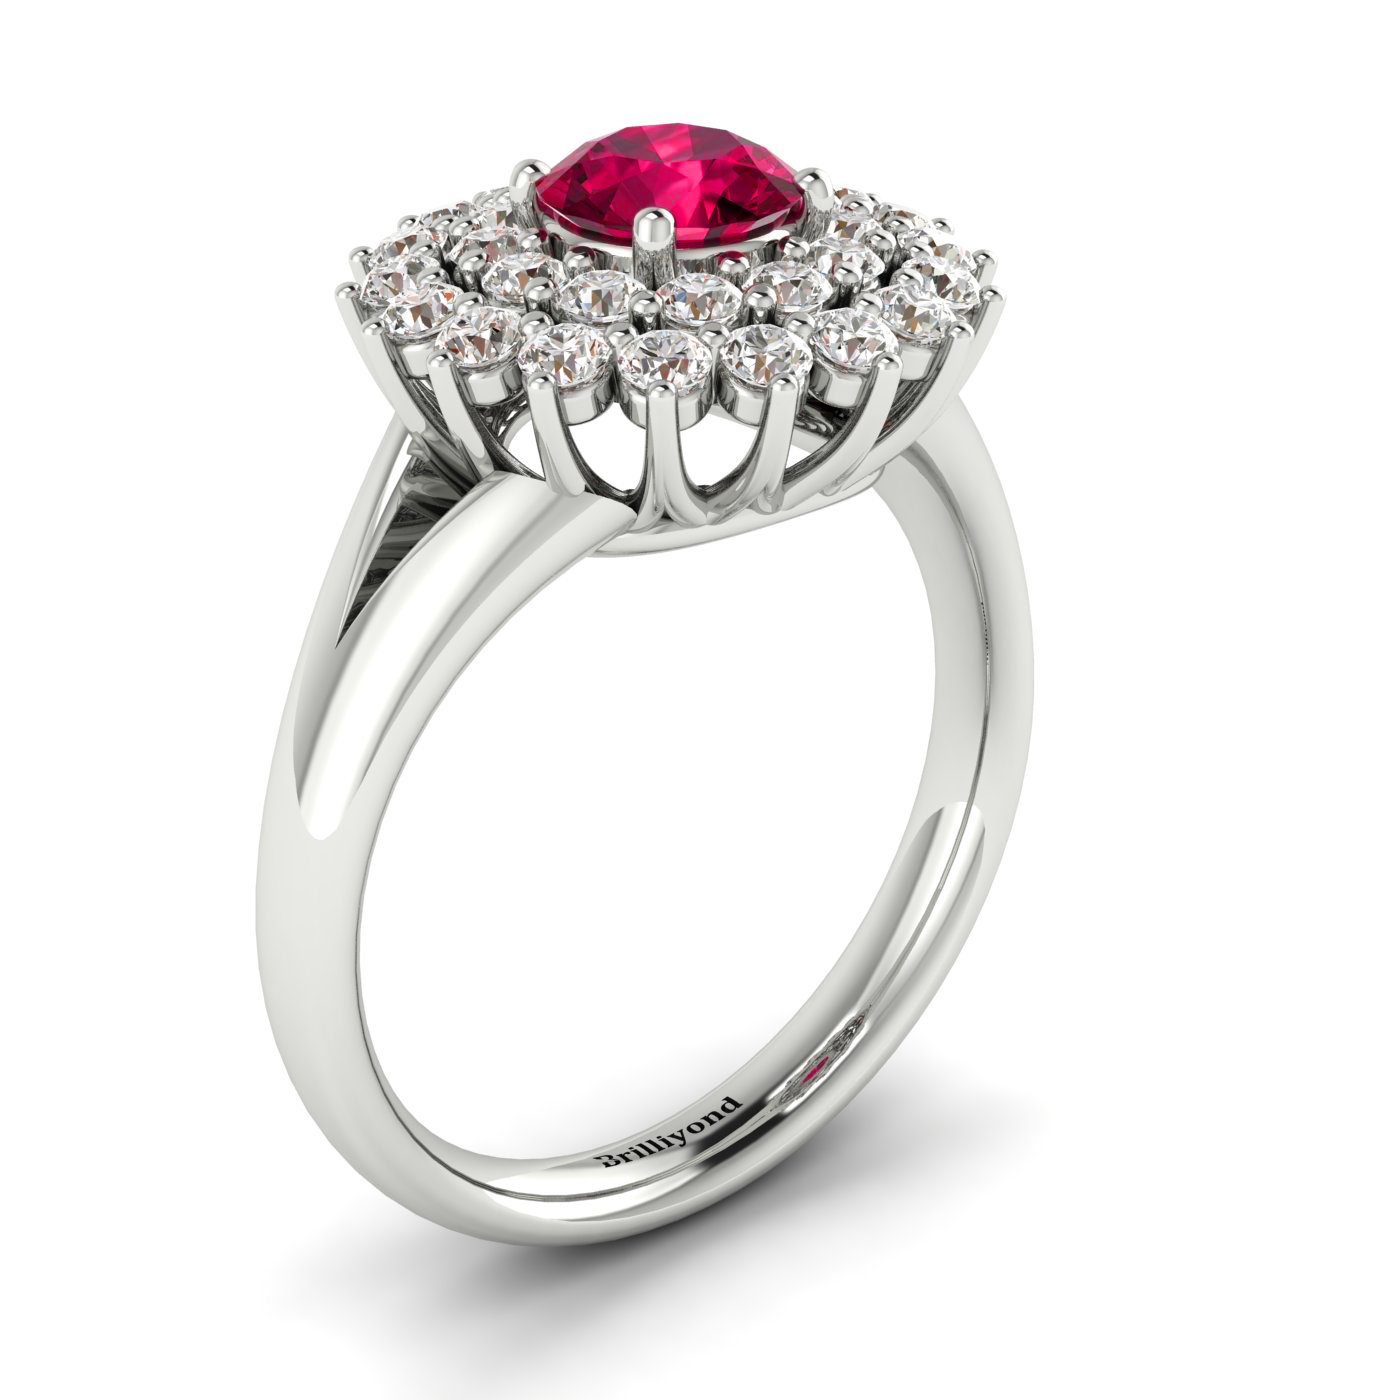 18k White Gold Cluster Engagement Ring with Ruby and Diamonds